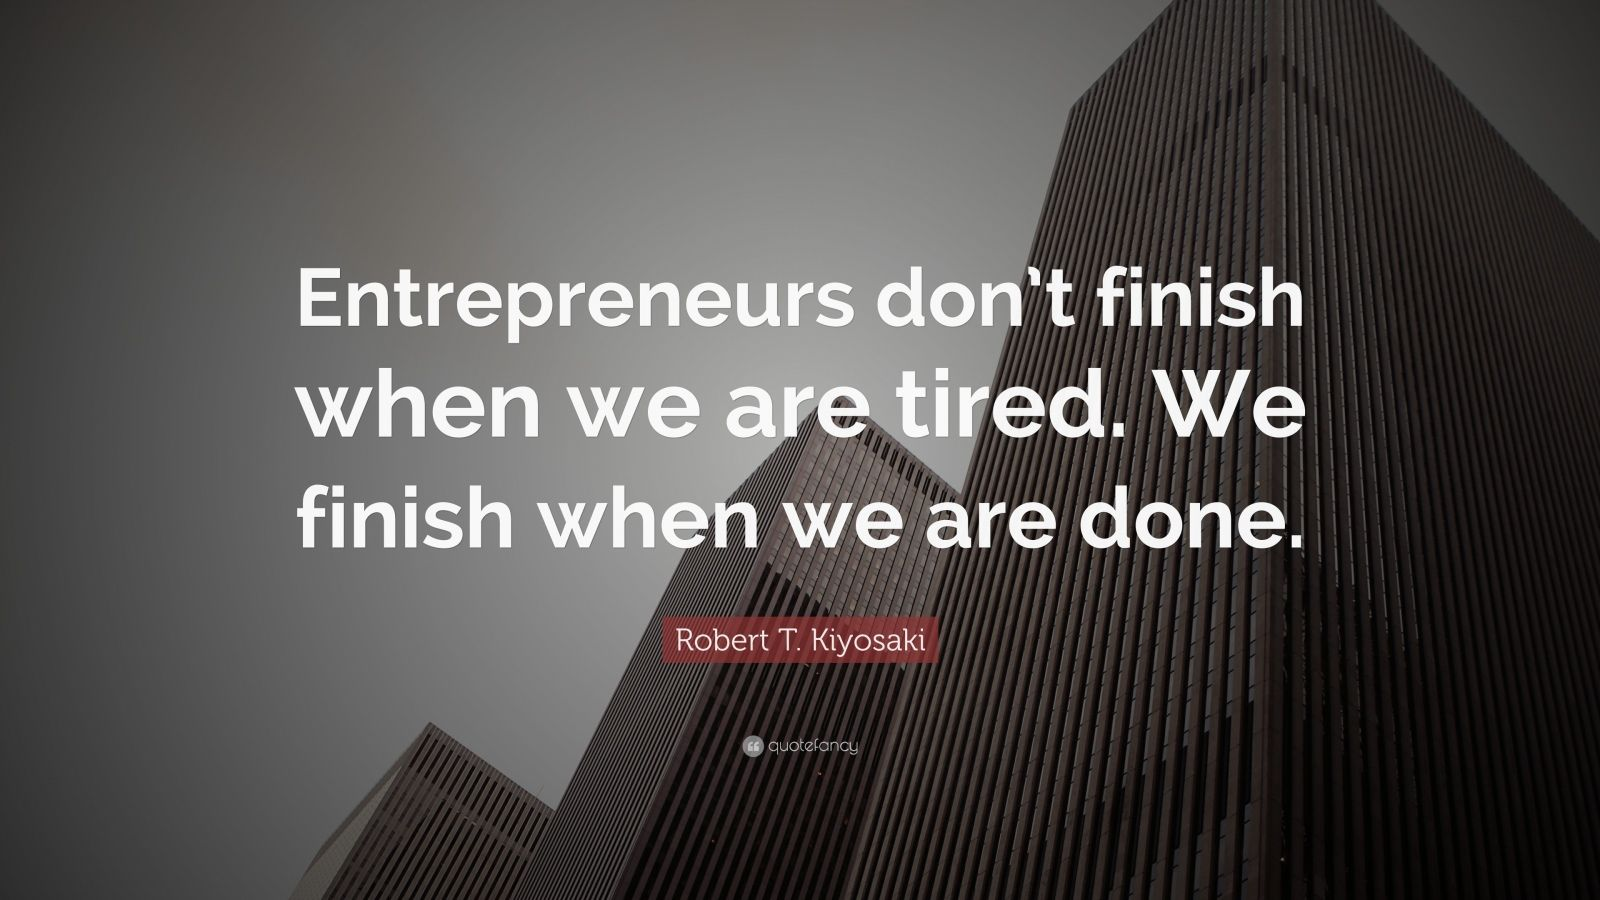 Entrepreneurship Quotes Best Inspirational Entrepreneurship Quotes 100 Wallpapers  Quotefancy